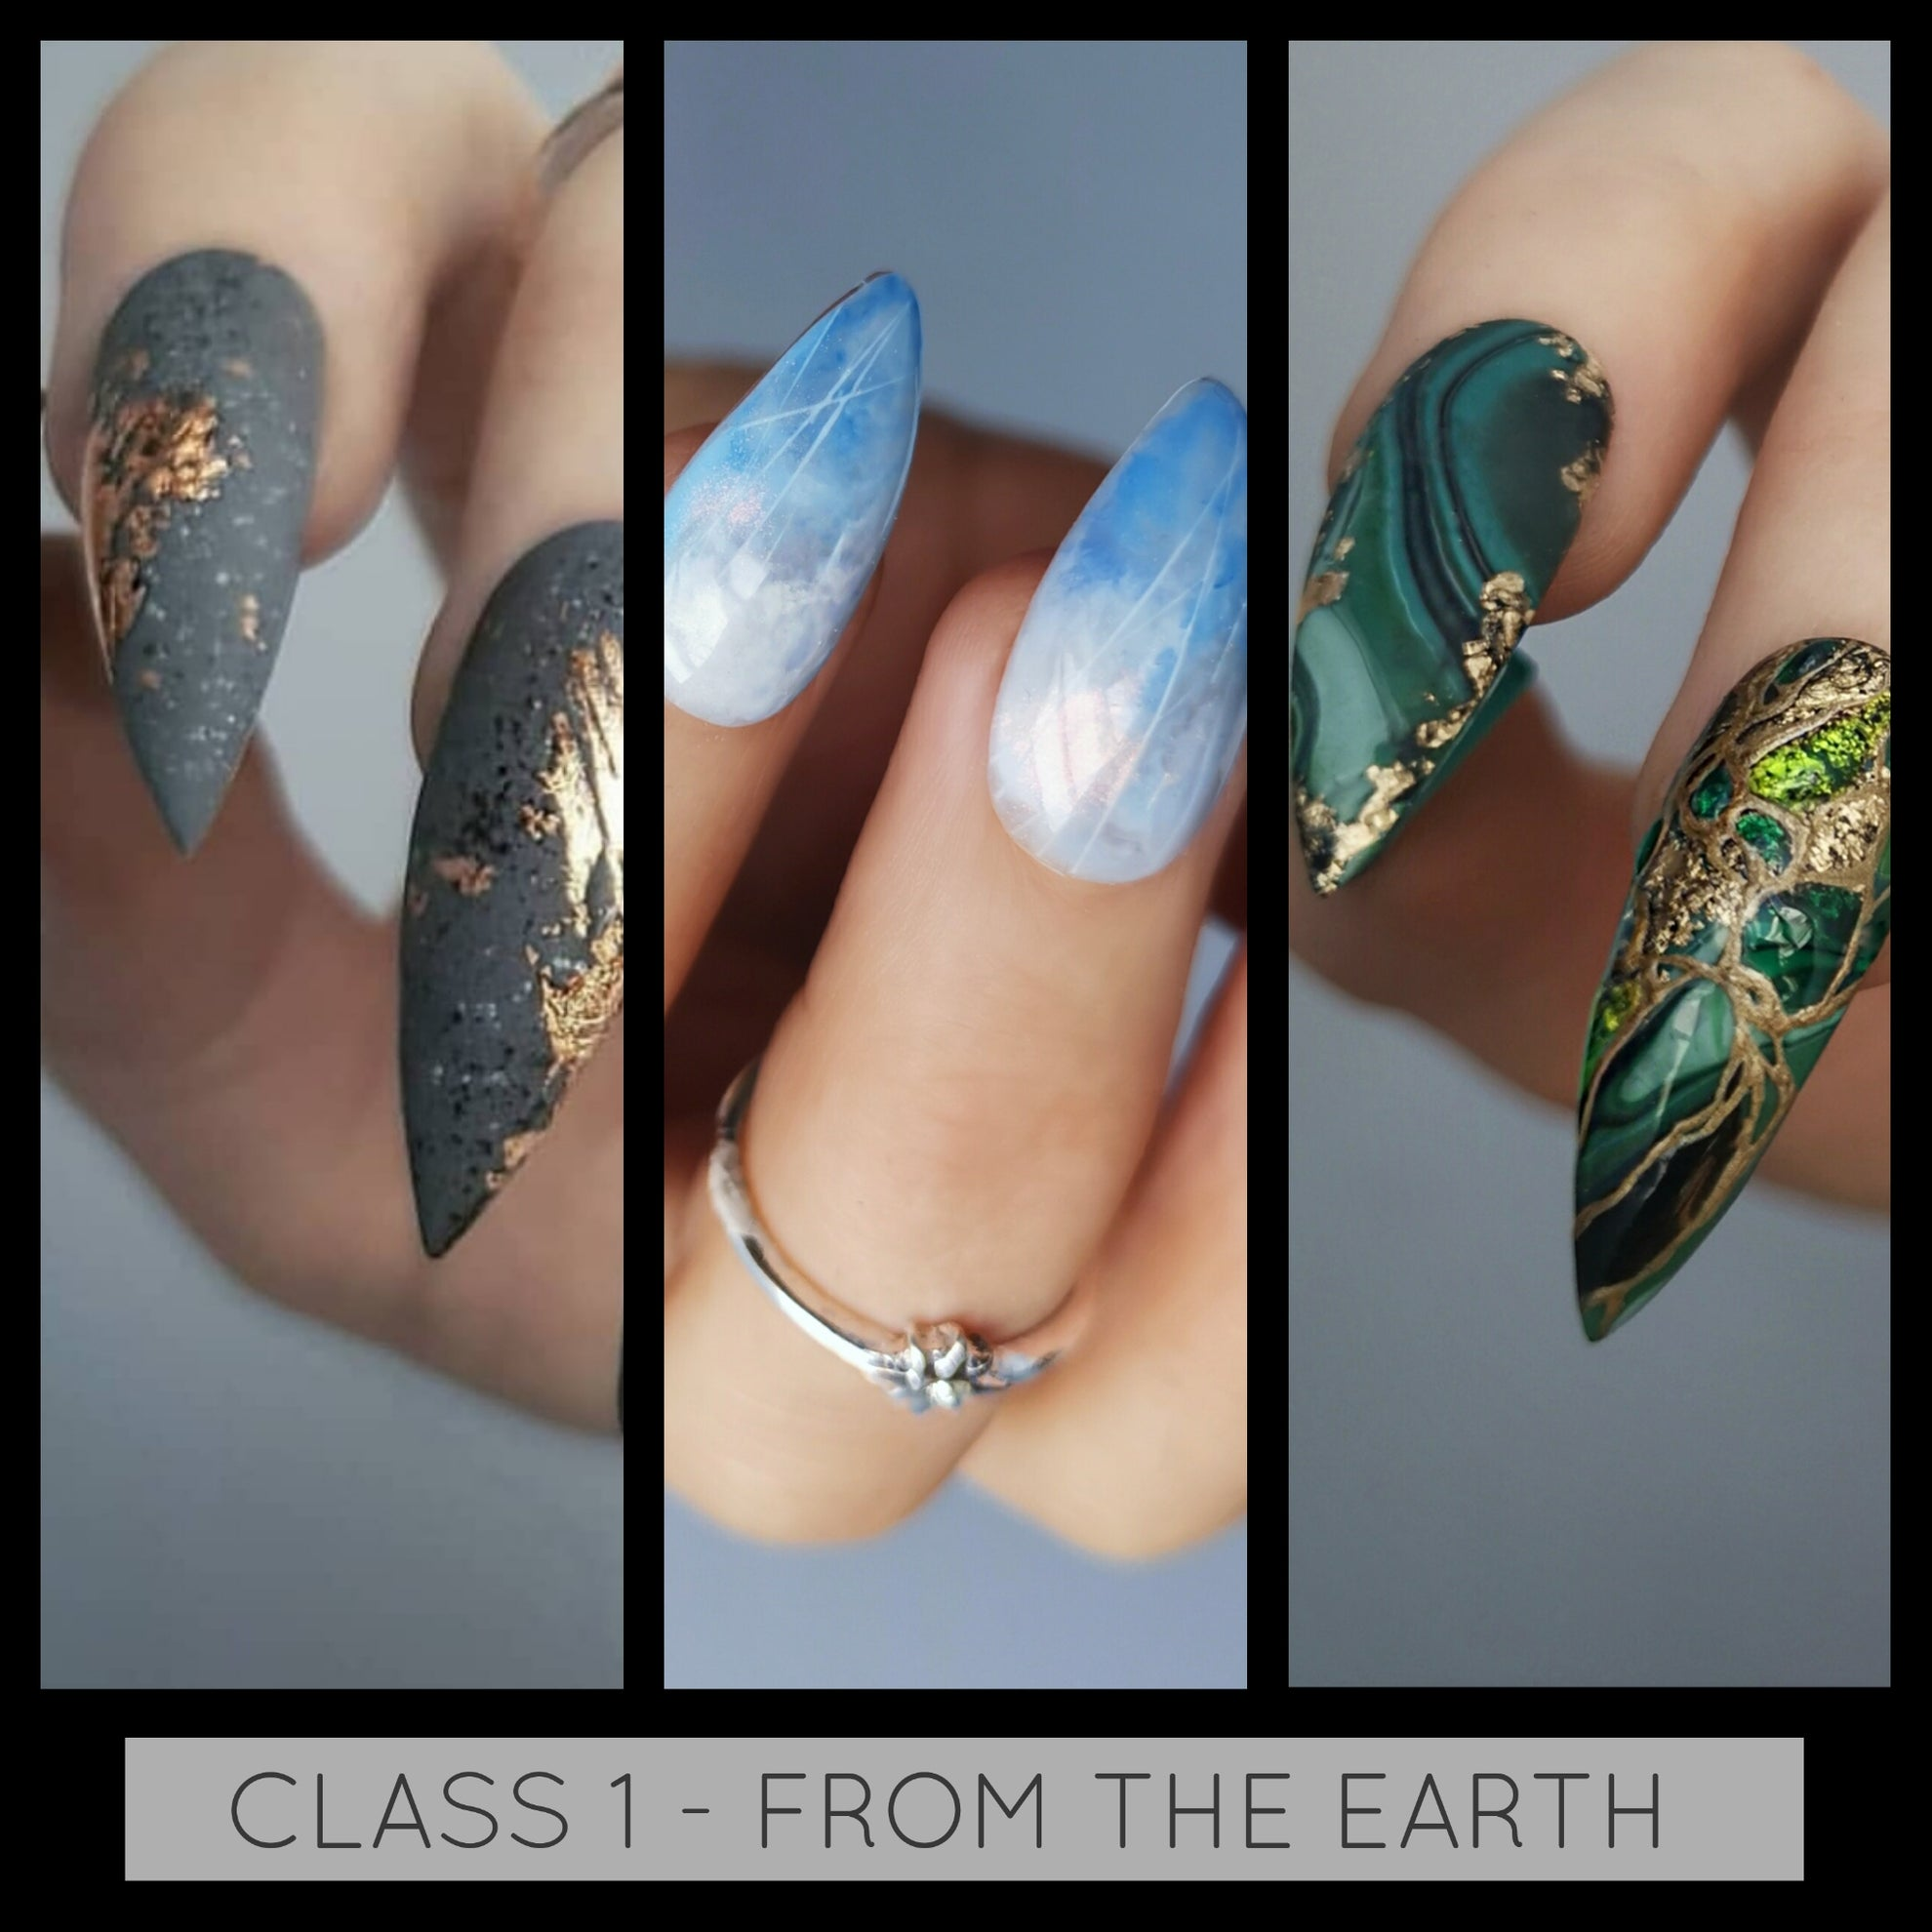 Class 1 - From The Earth